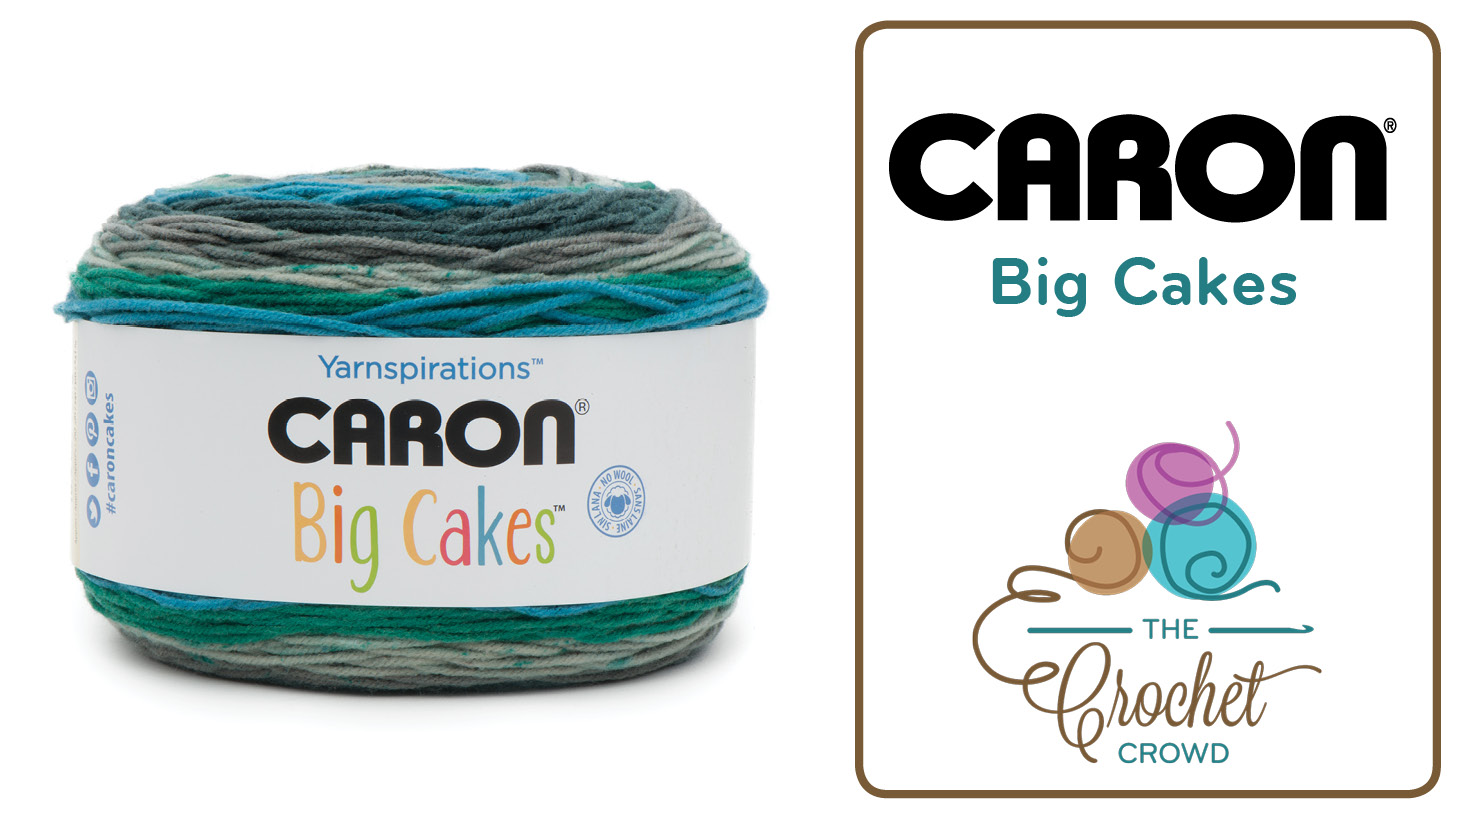 What To Do With Caron Big Cakes Yarn